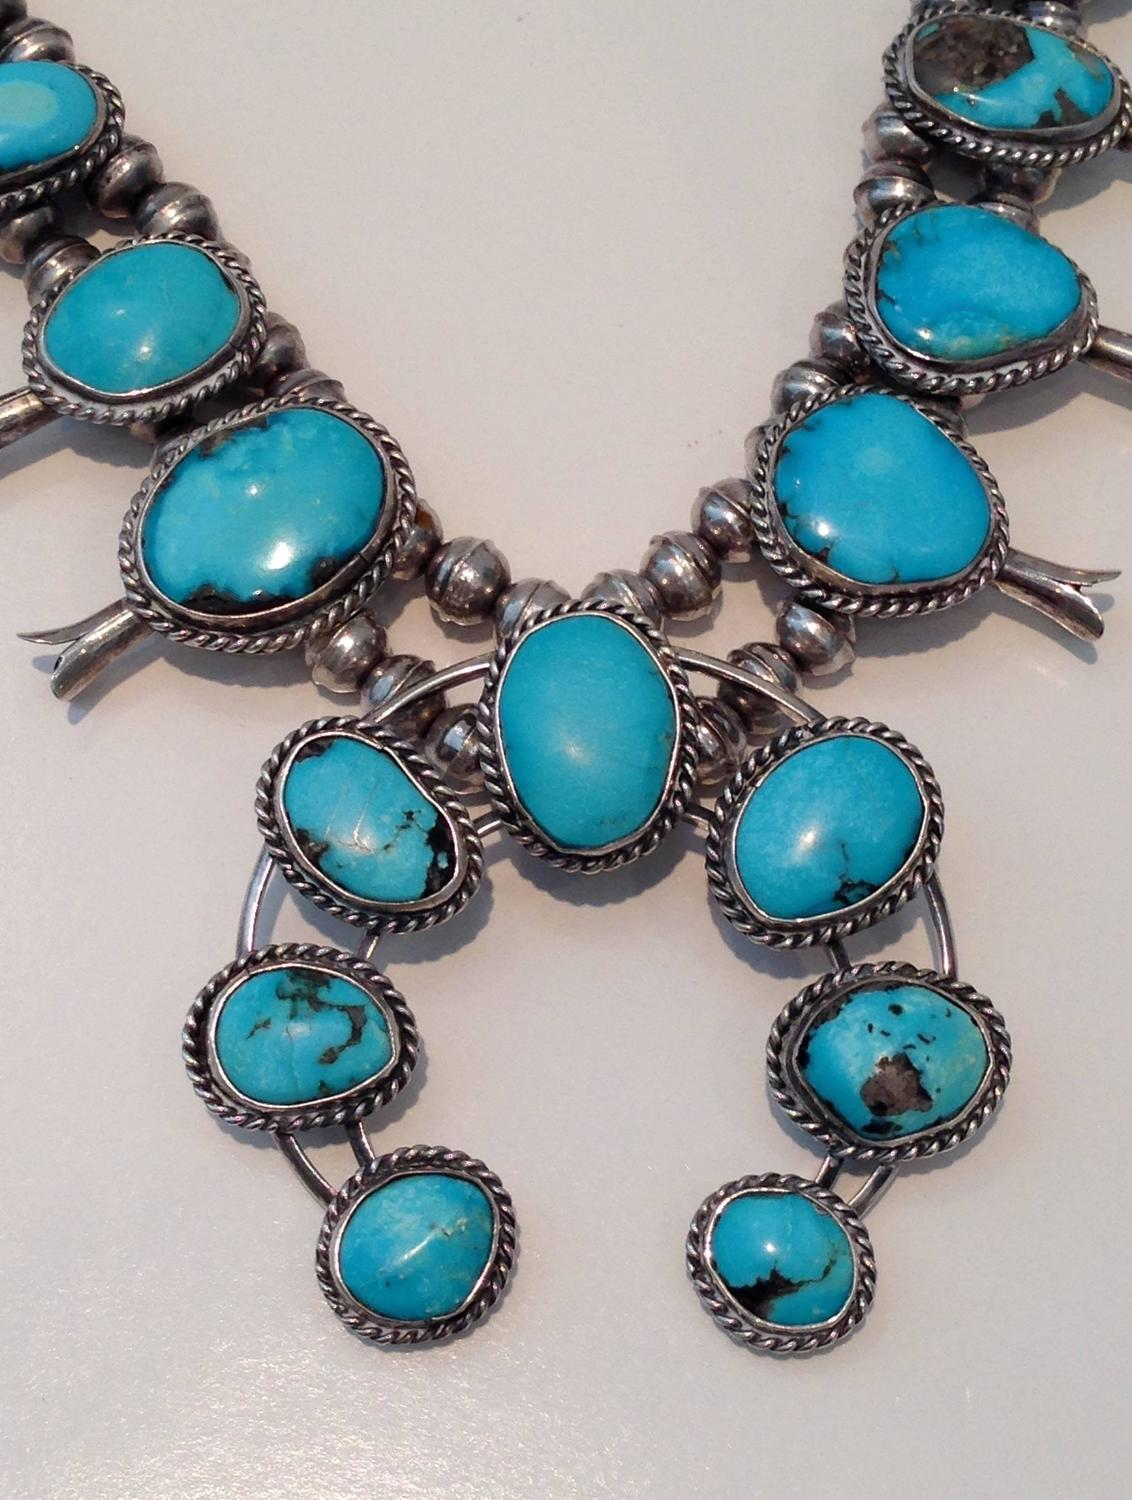 1960s navajo sterling silver and turquoise squash blossom